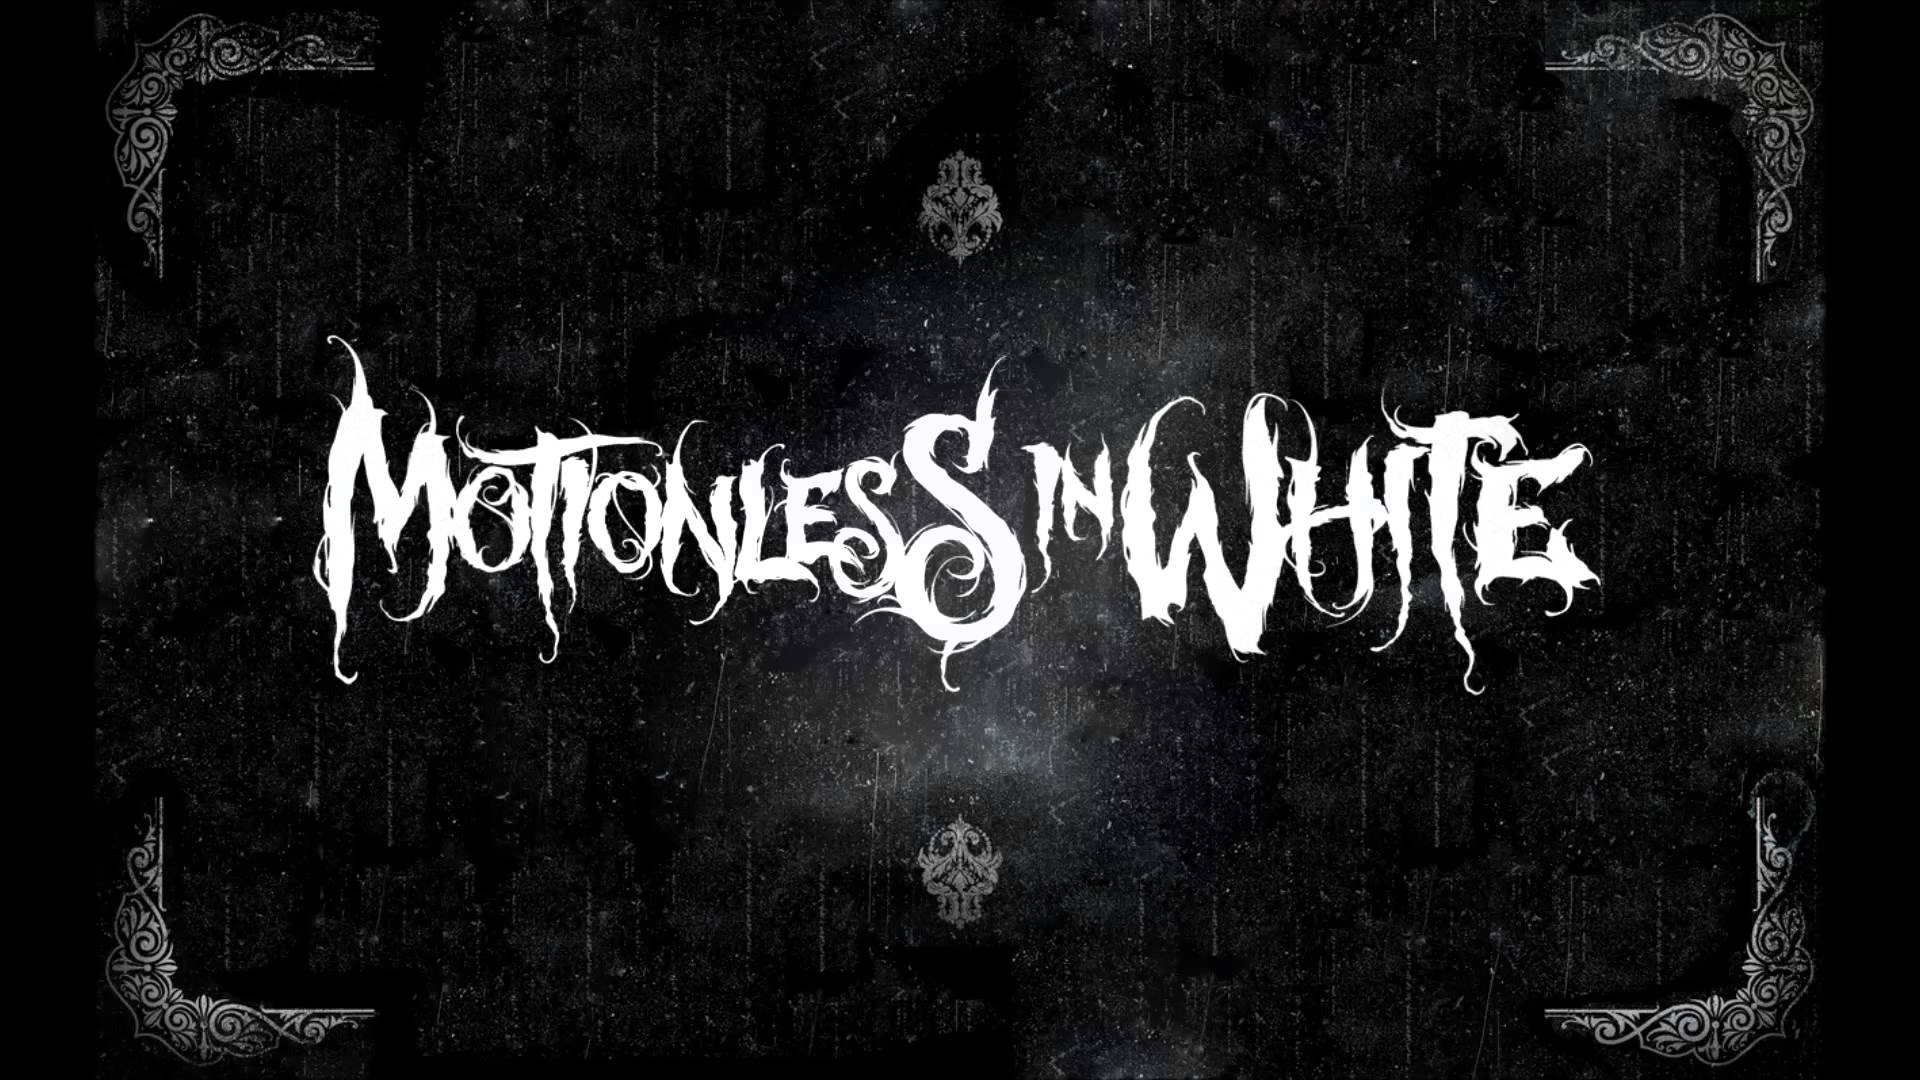 3d Live Wallpaper For Pc Windows 7 Free Download Download Motionless In White Wallpapers Gallery